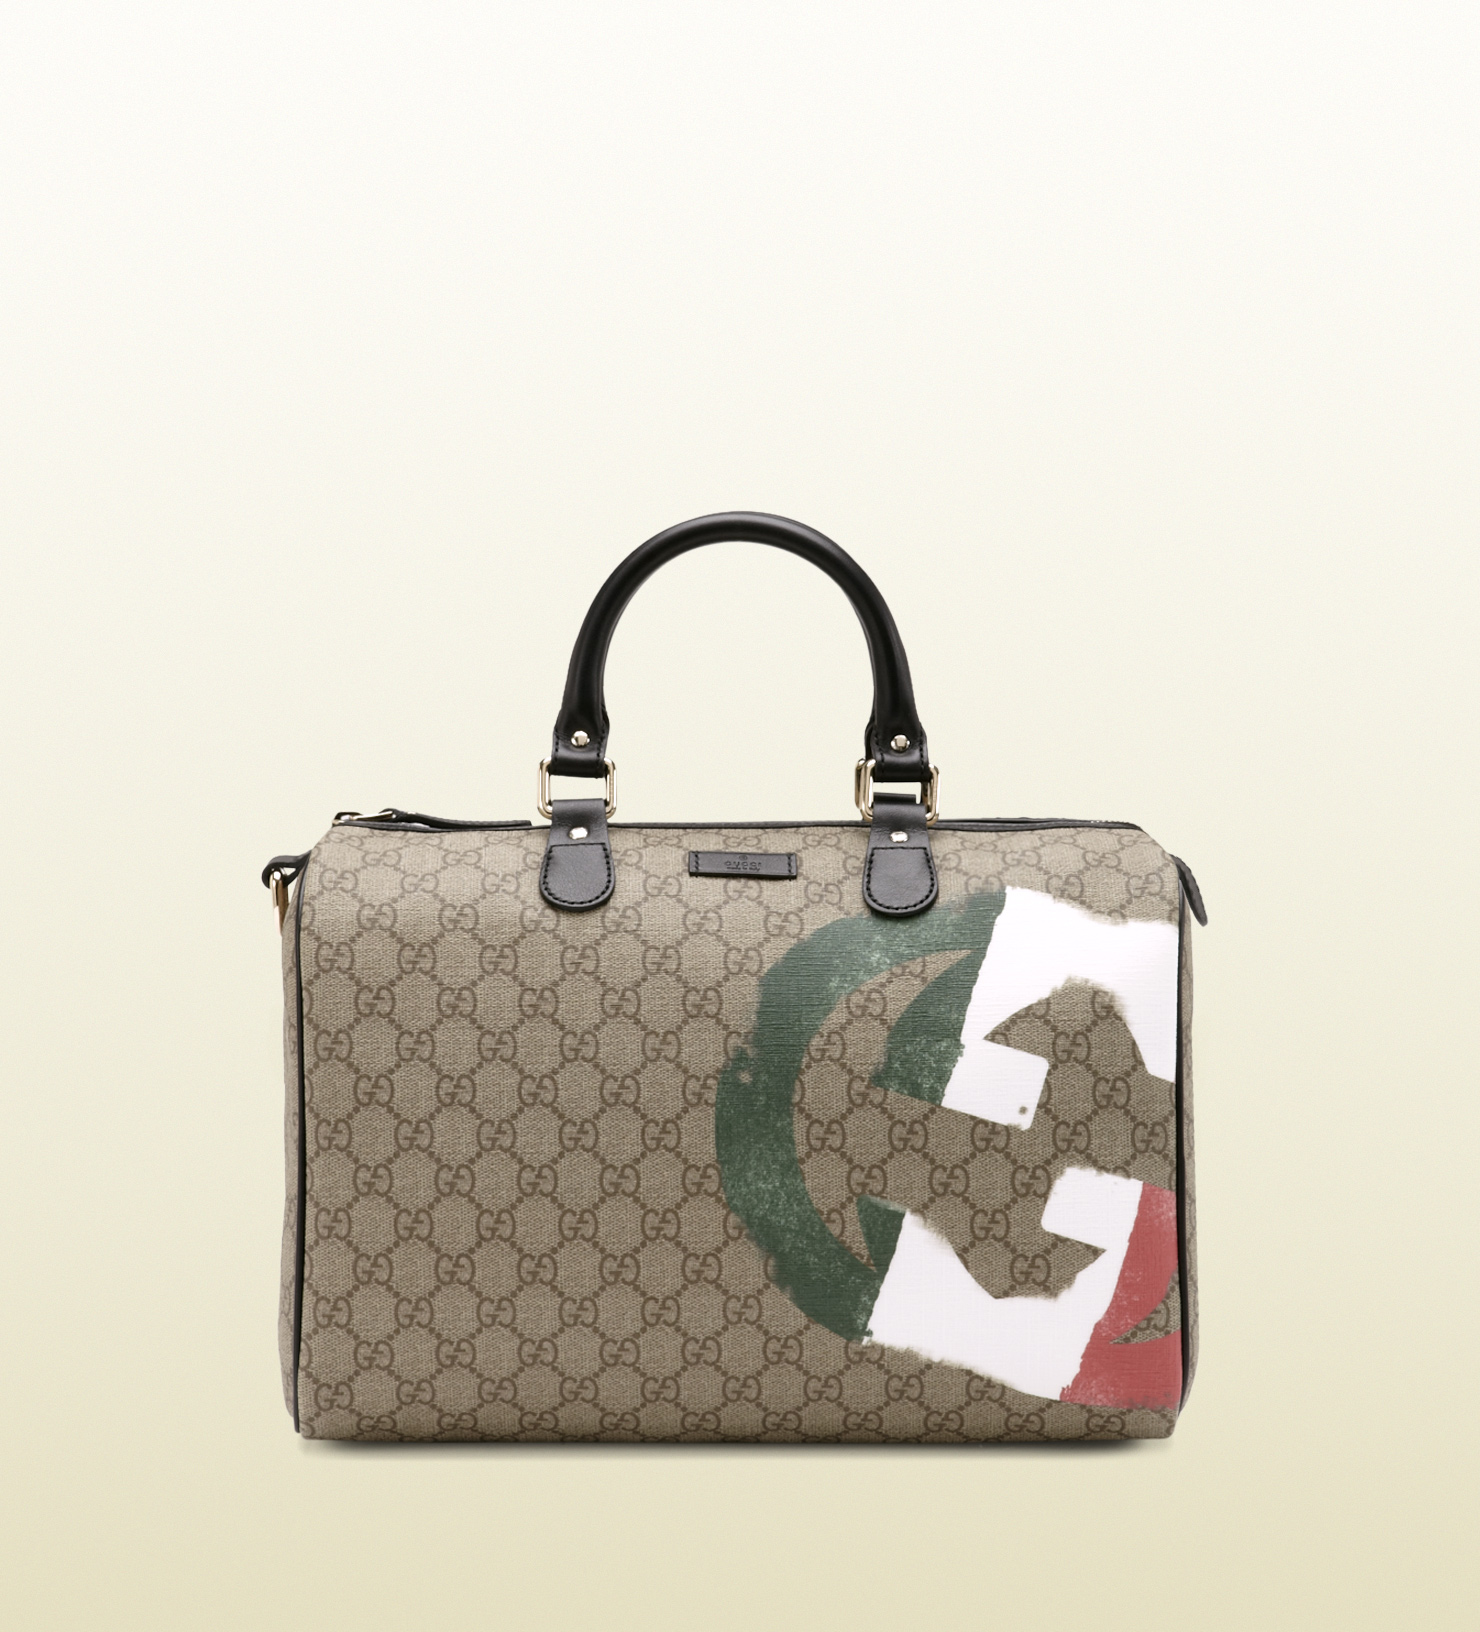 9eb4f64b070b Gucci Italy GG Flag Collection Boston Bag in Natural - Lyst